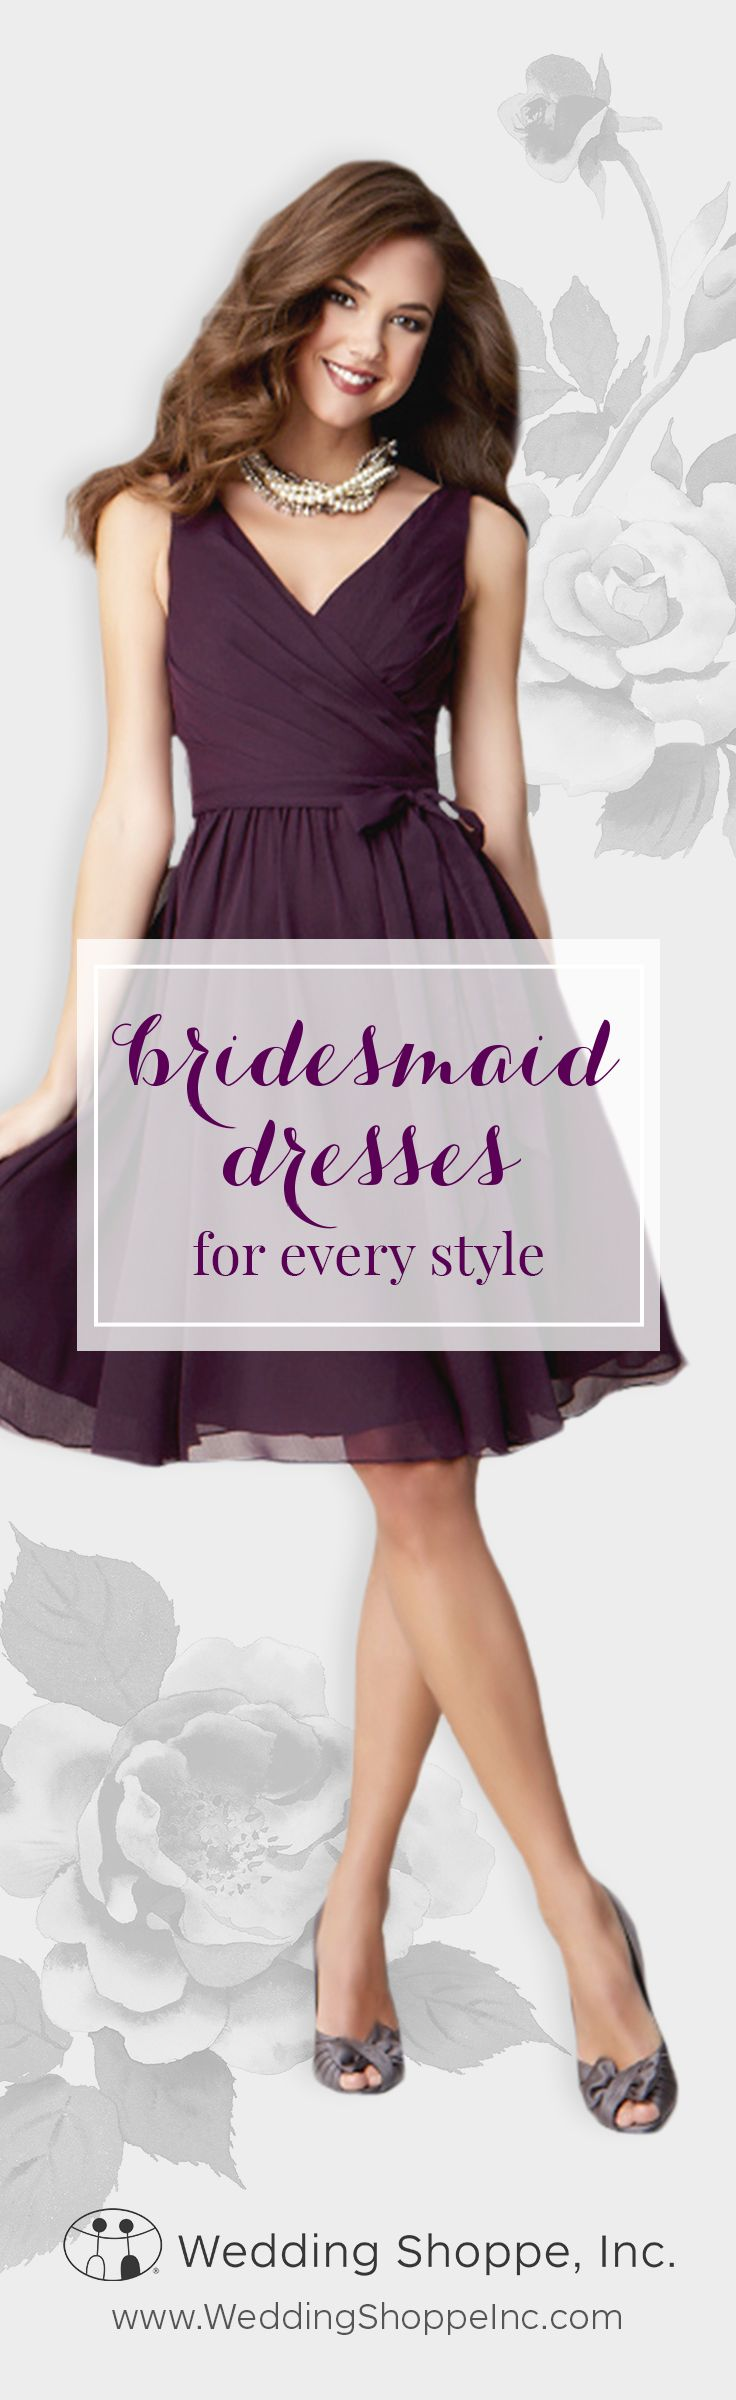 Your favorite styles for the lowest prices. Shop bridesmaid dresses from the Wedding Shoppe and complete your look!